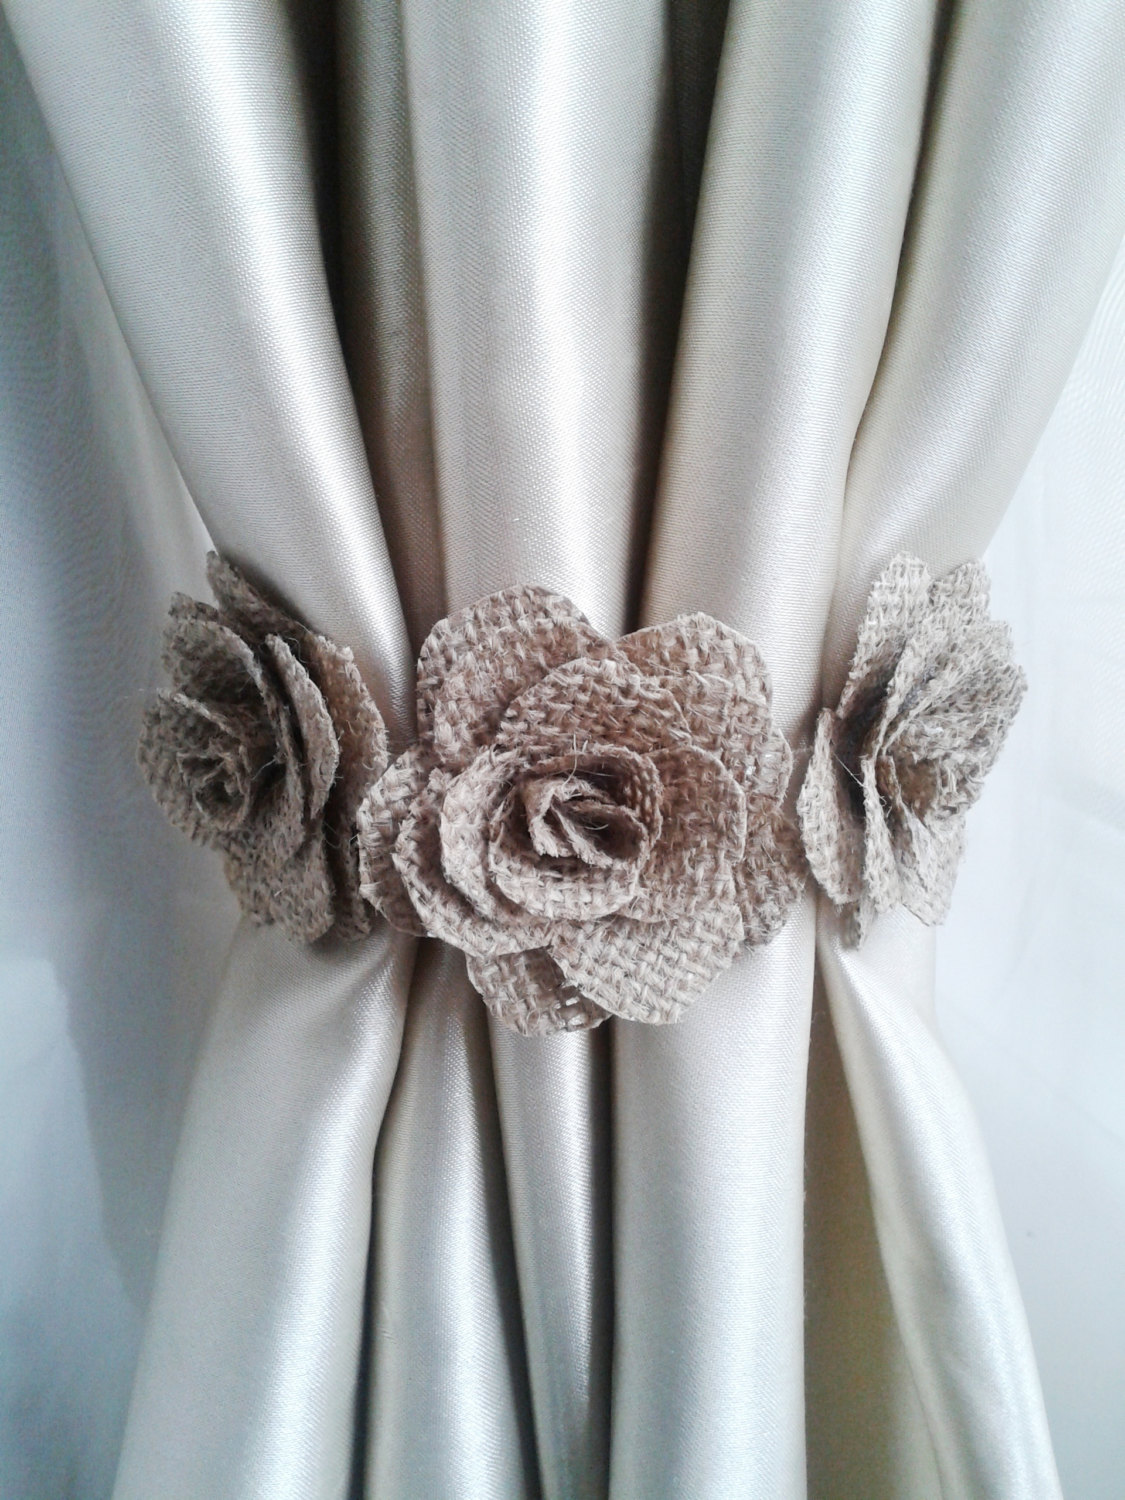 How To Make Ribbon Tie Backs For Curtains Glif Org